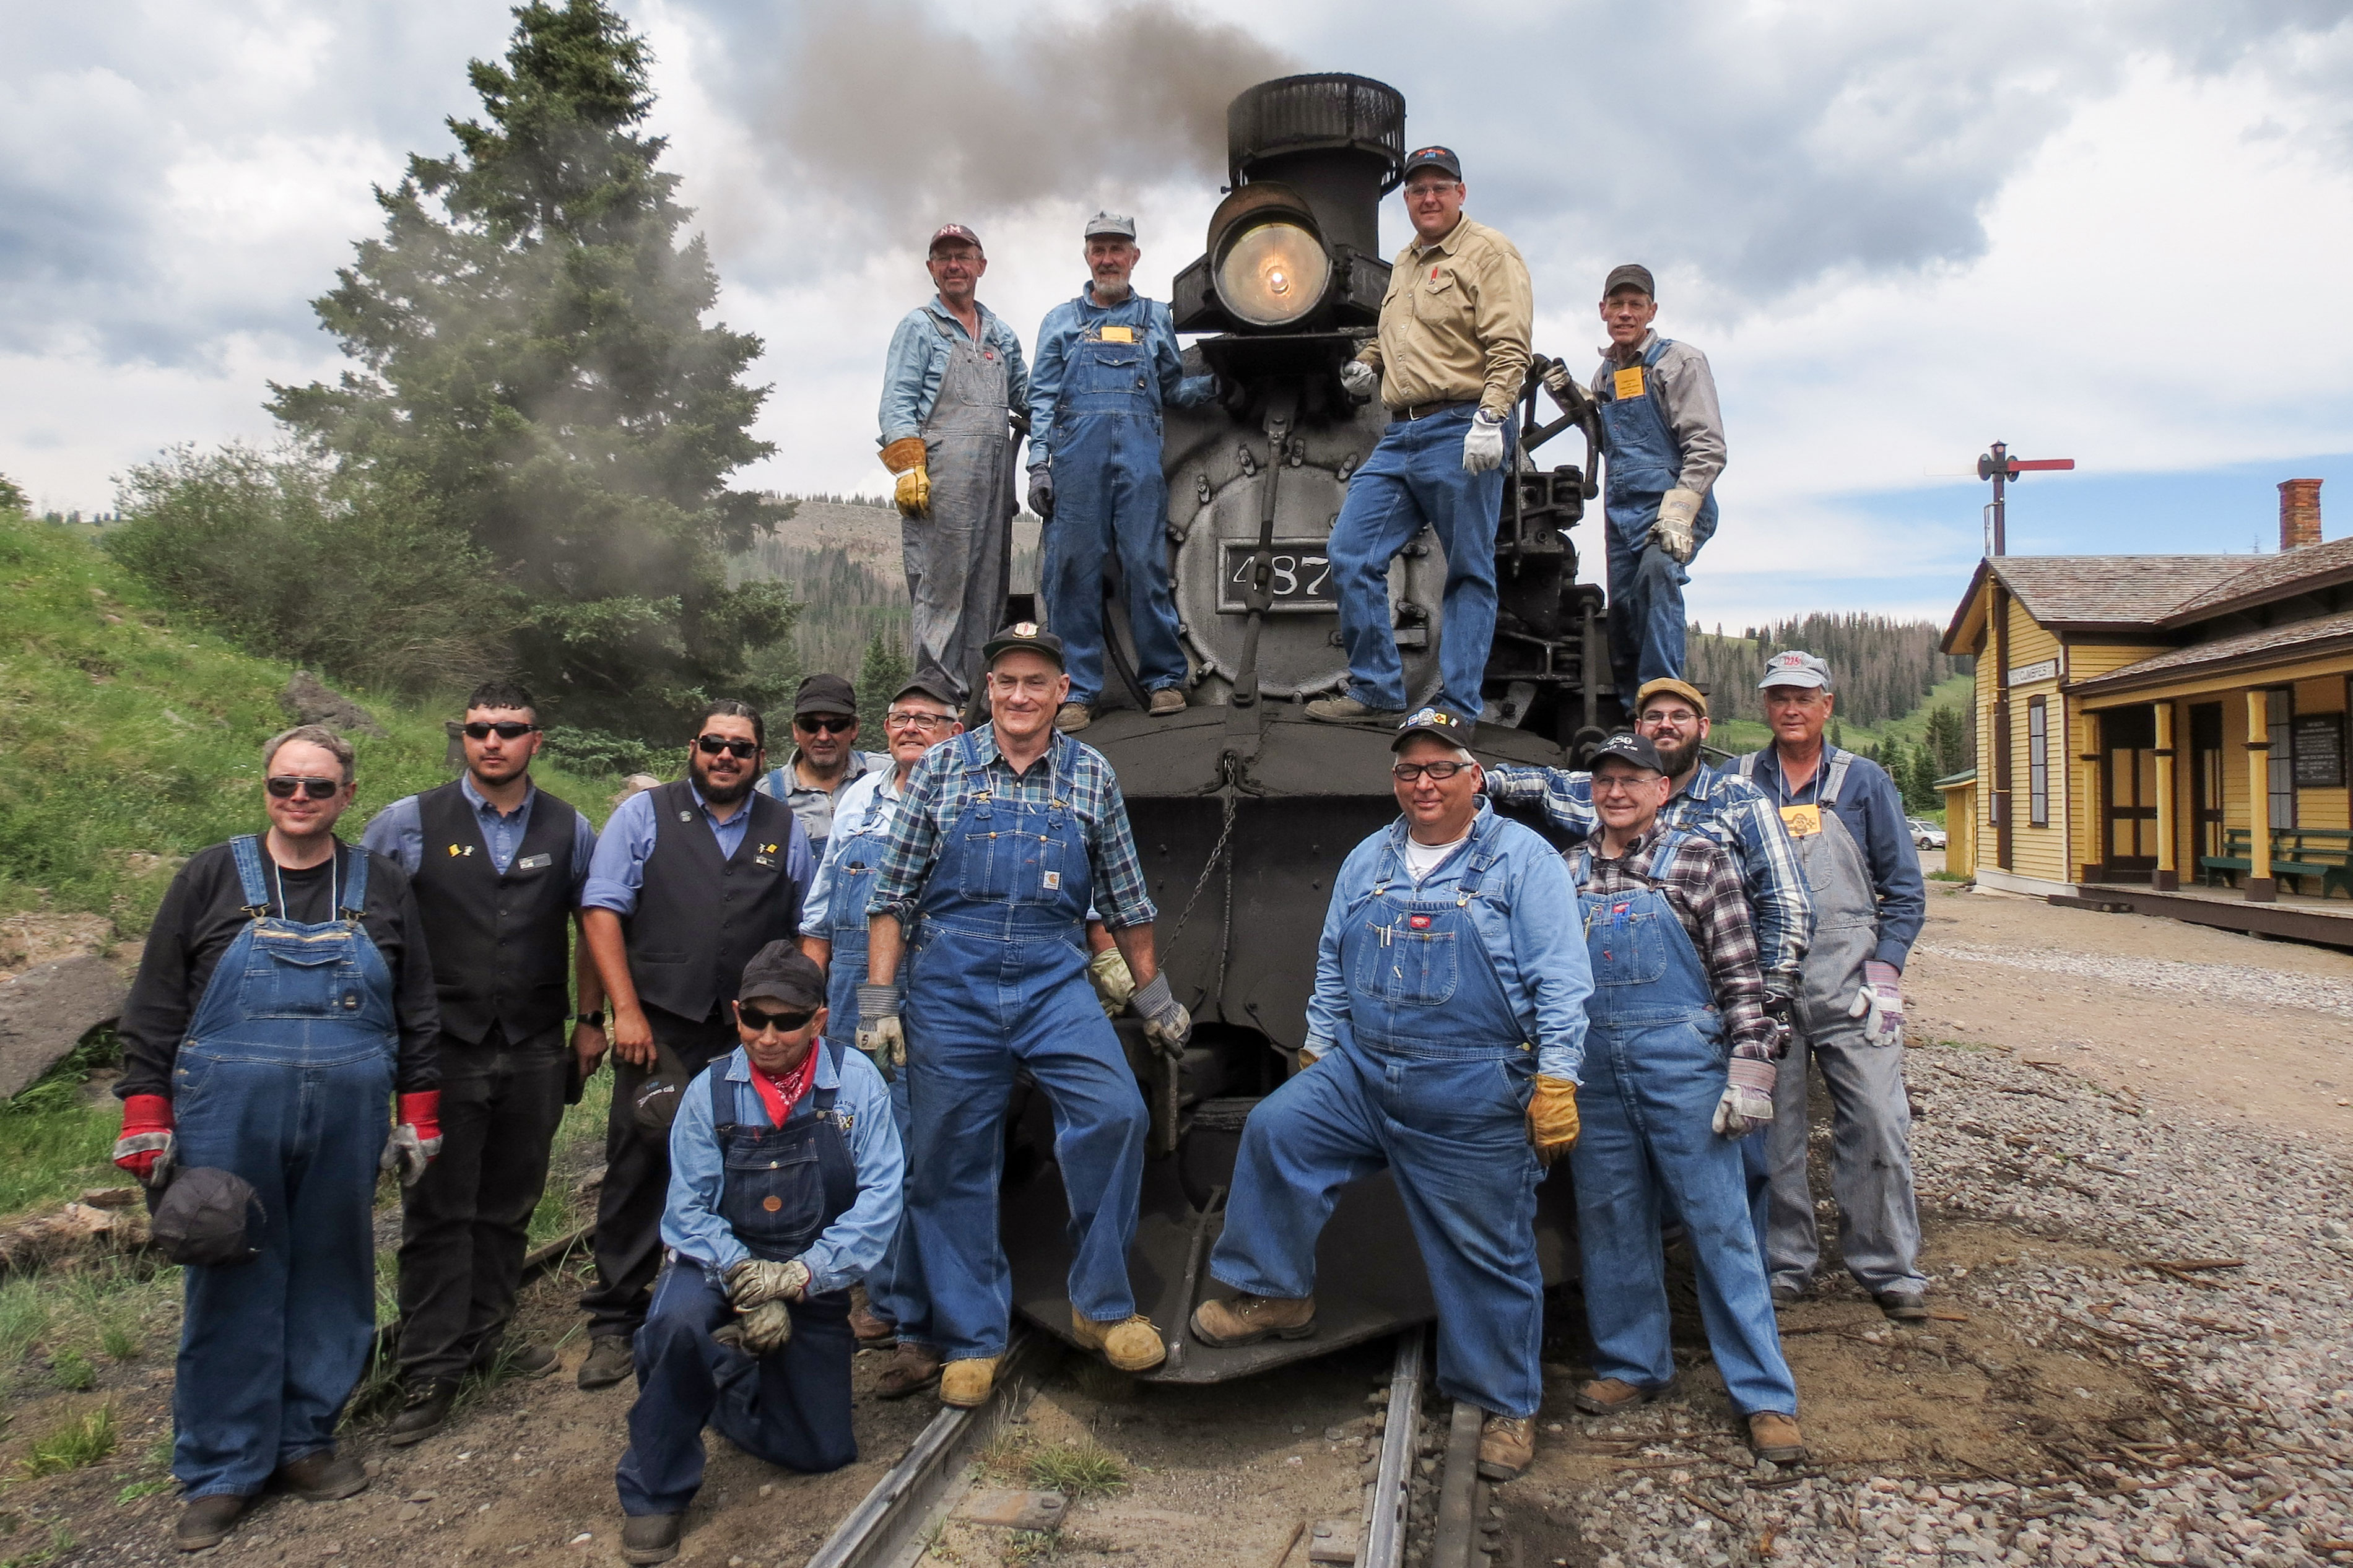 <p>The Cumbres & Toltec Scenic Railroad engineer and fireman school poses with instructors in front of the Engine 487 at the summit of Cumbres Pass in Colorado.</p>